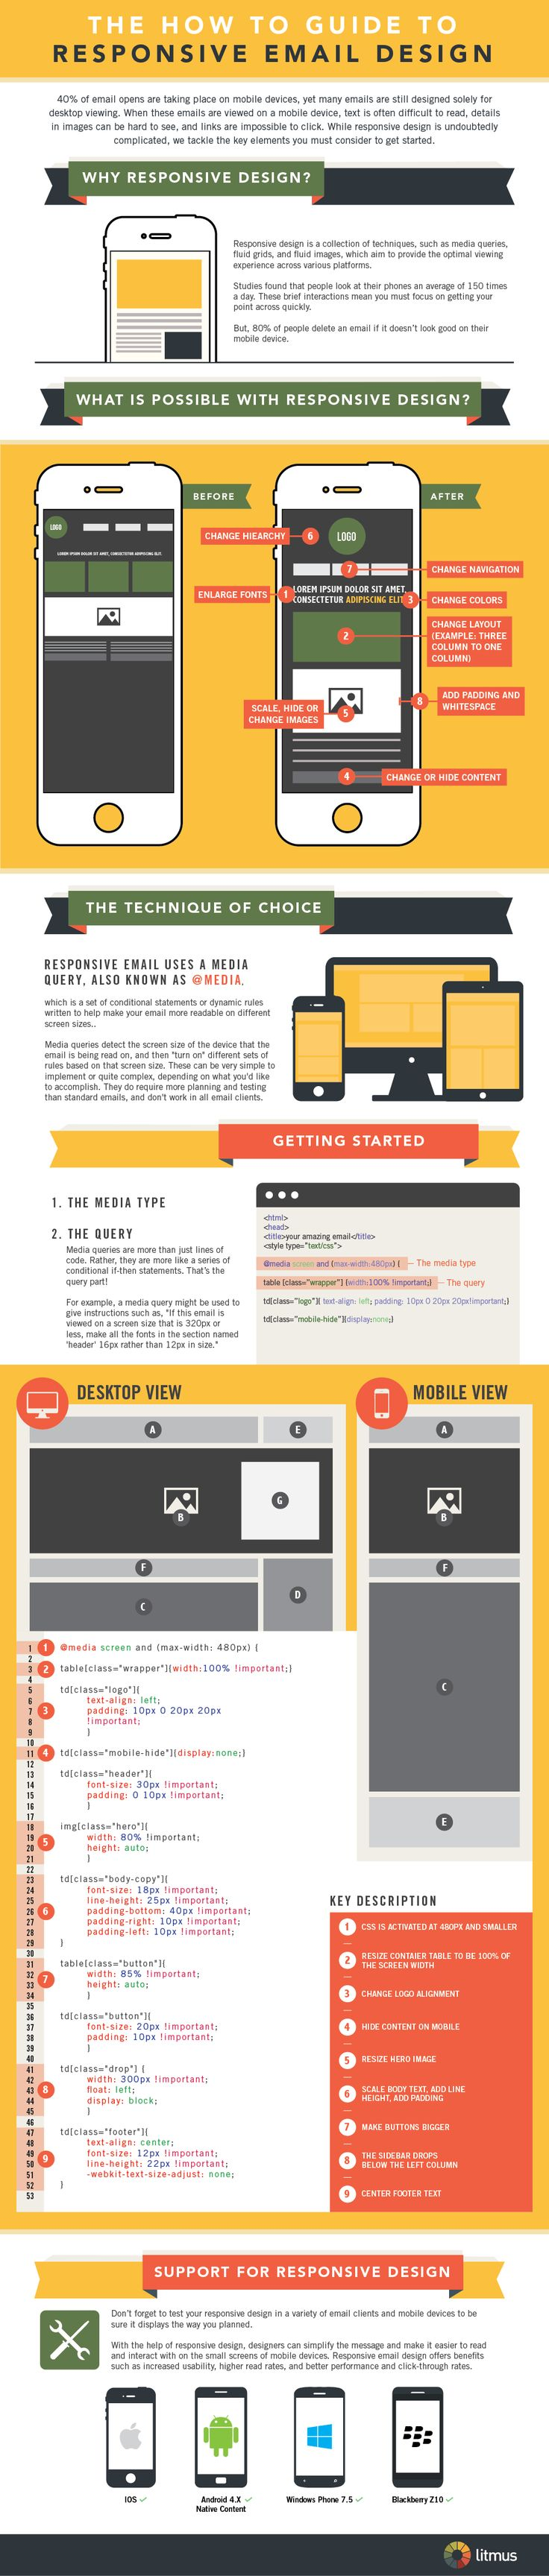 A Simple Technique for Designing Better Mobile Emails (Infographic) BY LAURA MONTINI 80% of people delete mobile emails that don't look good.